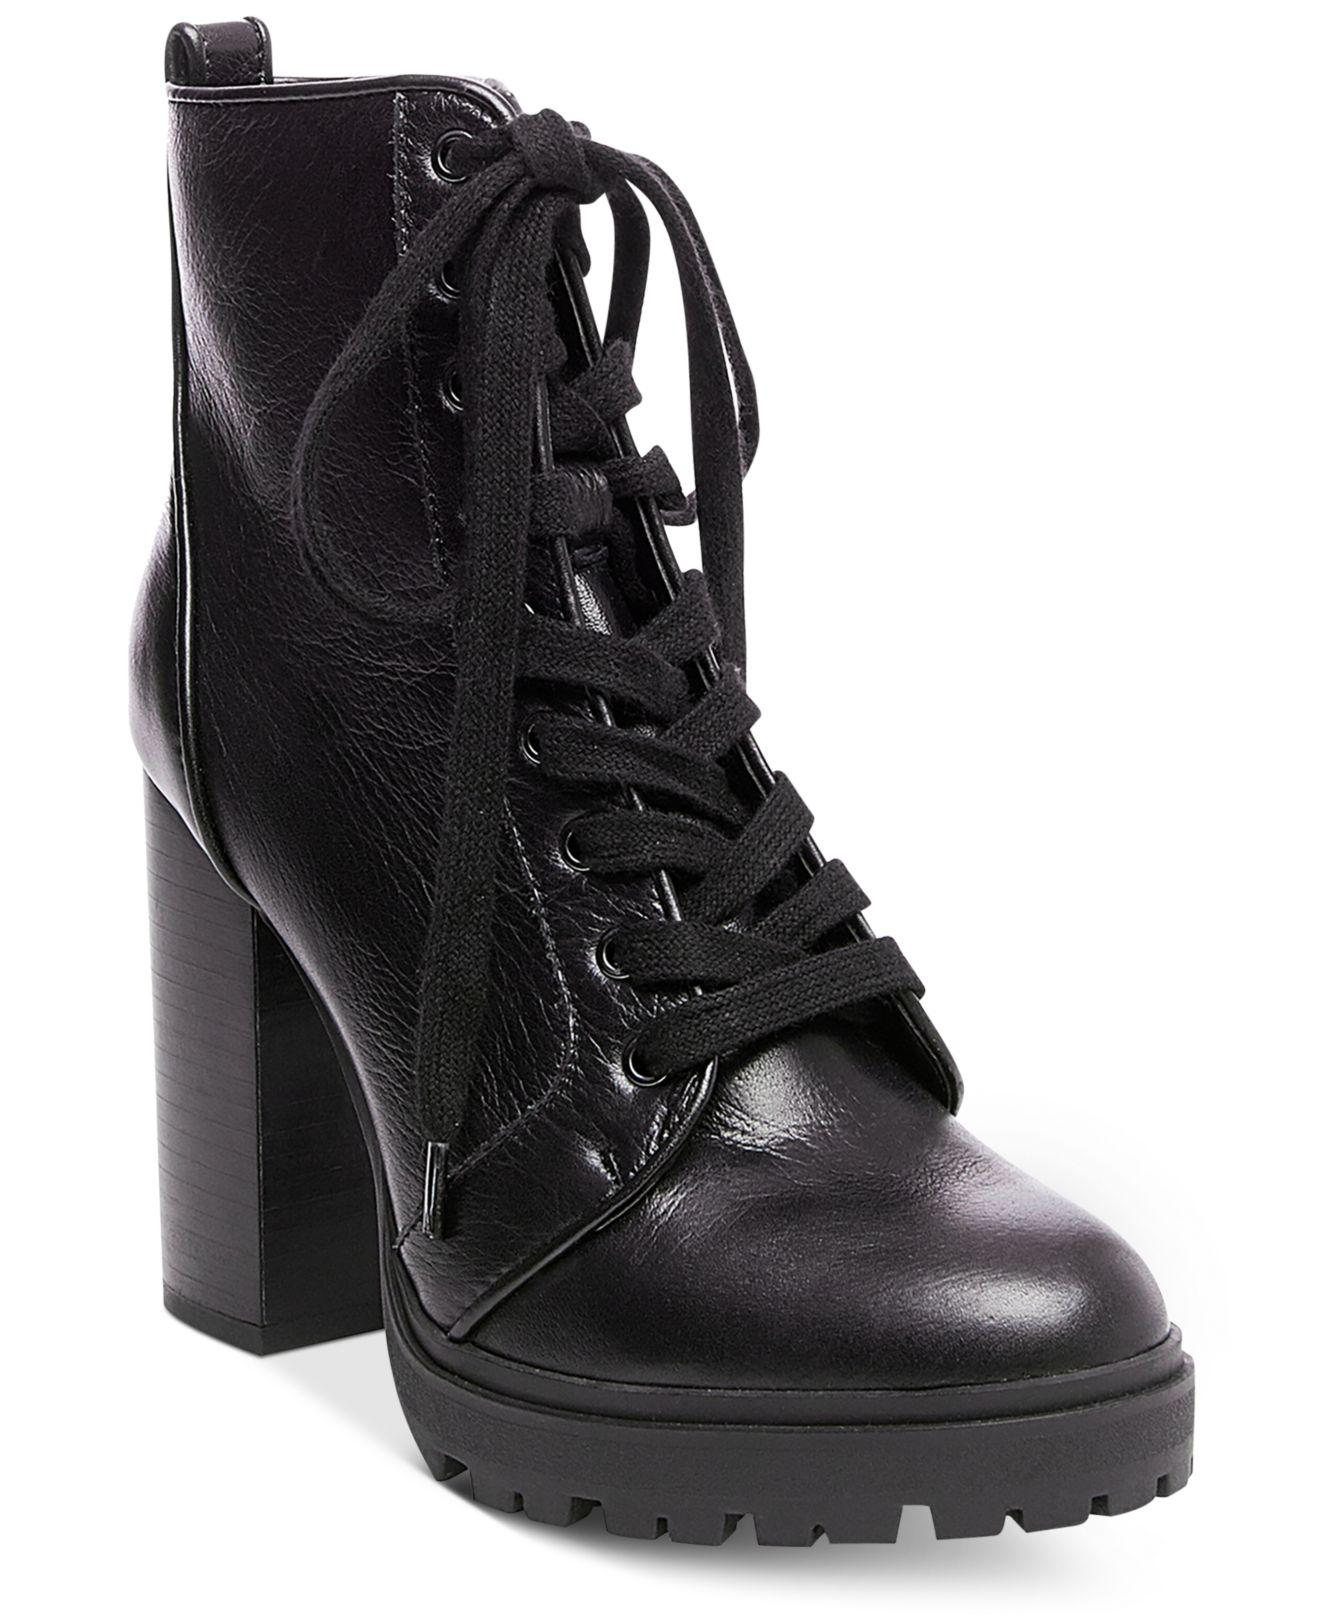 b162b86670b Lyst - Steve Madden Women s Laurie Platform Lace-up Booties in Black